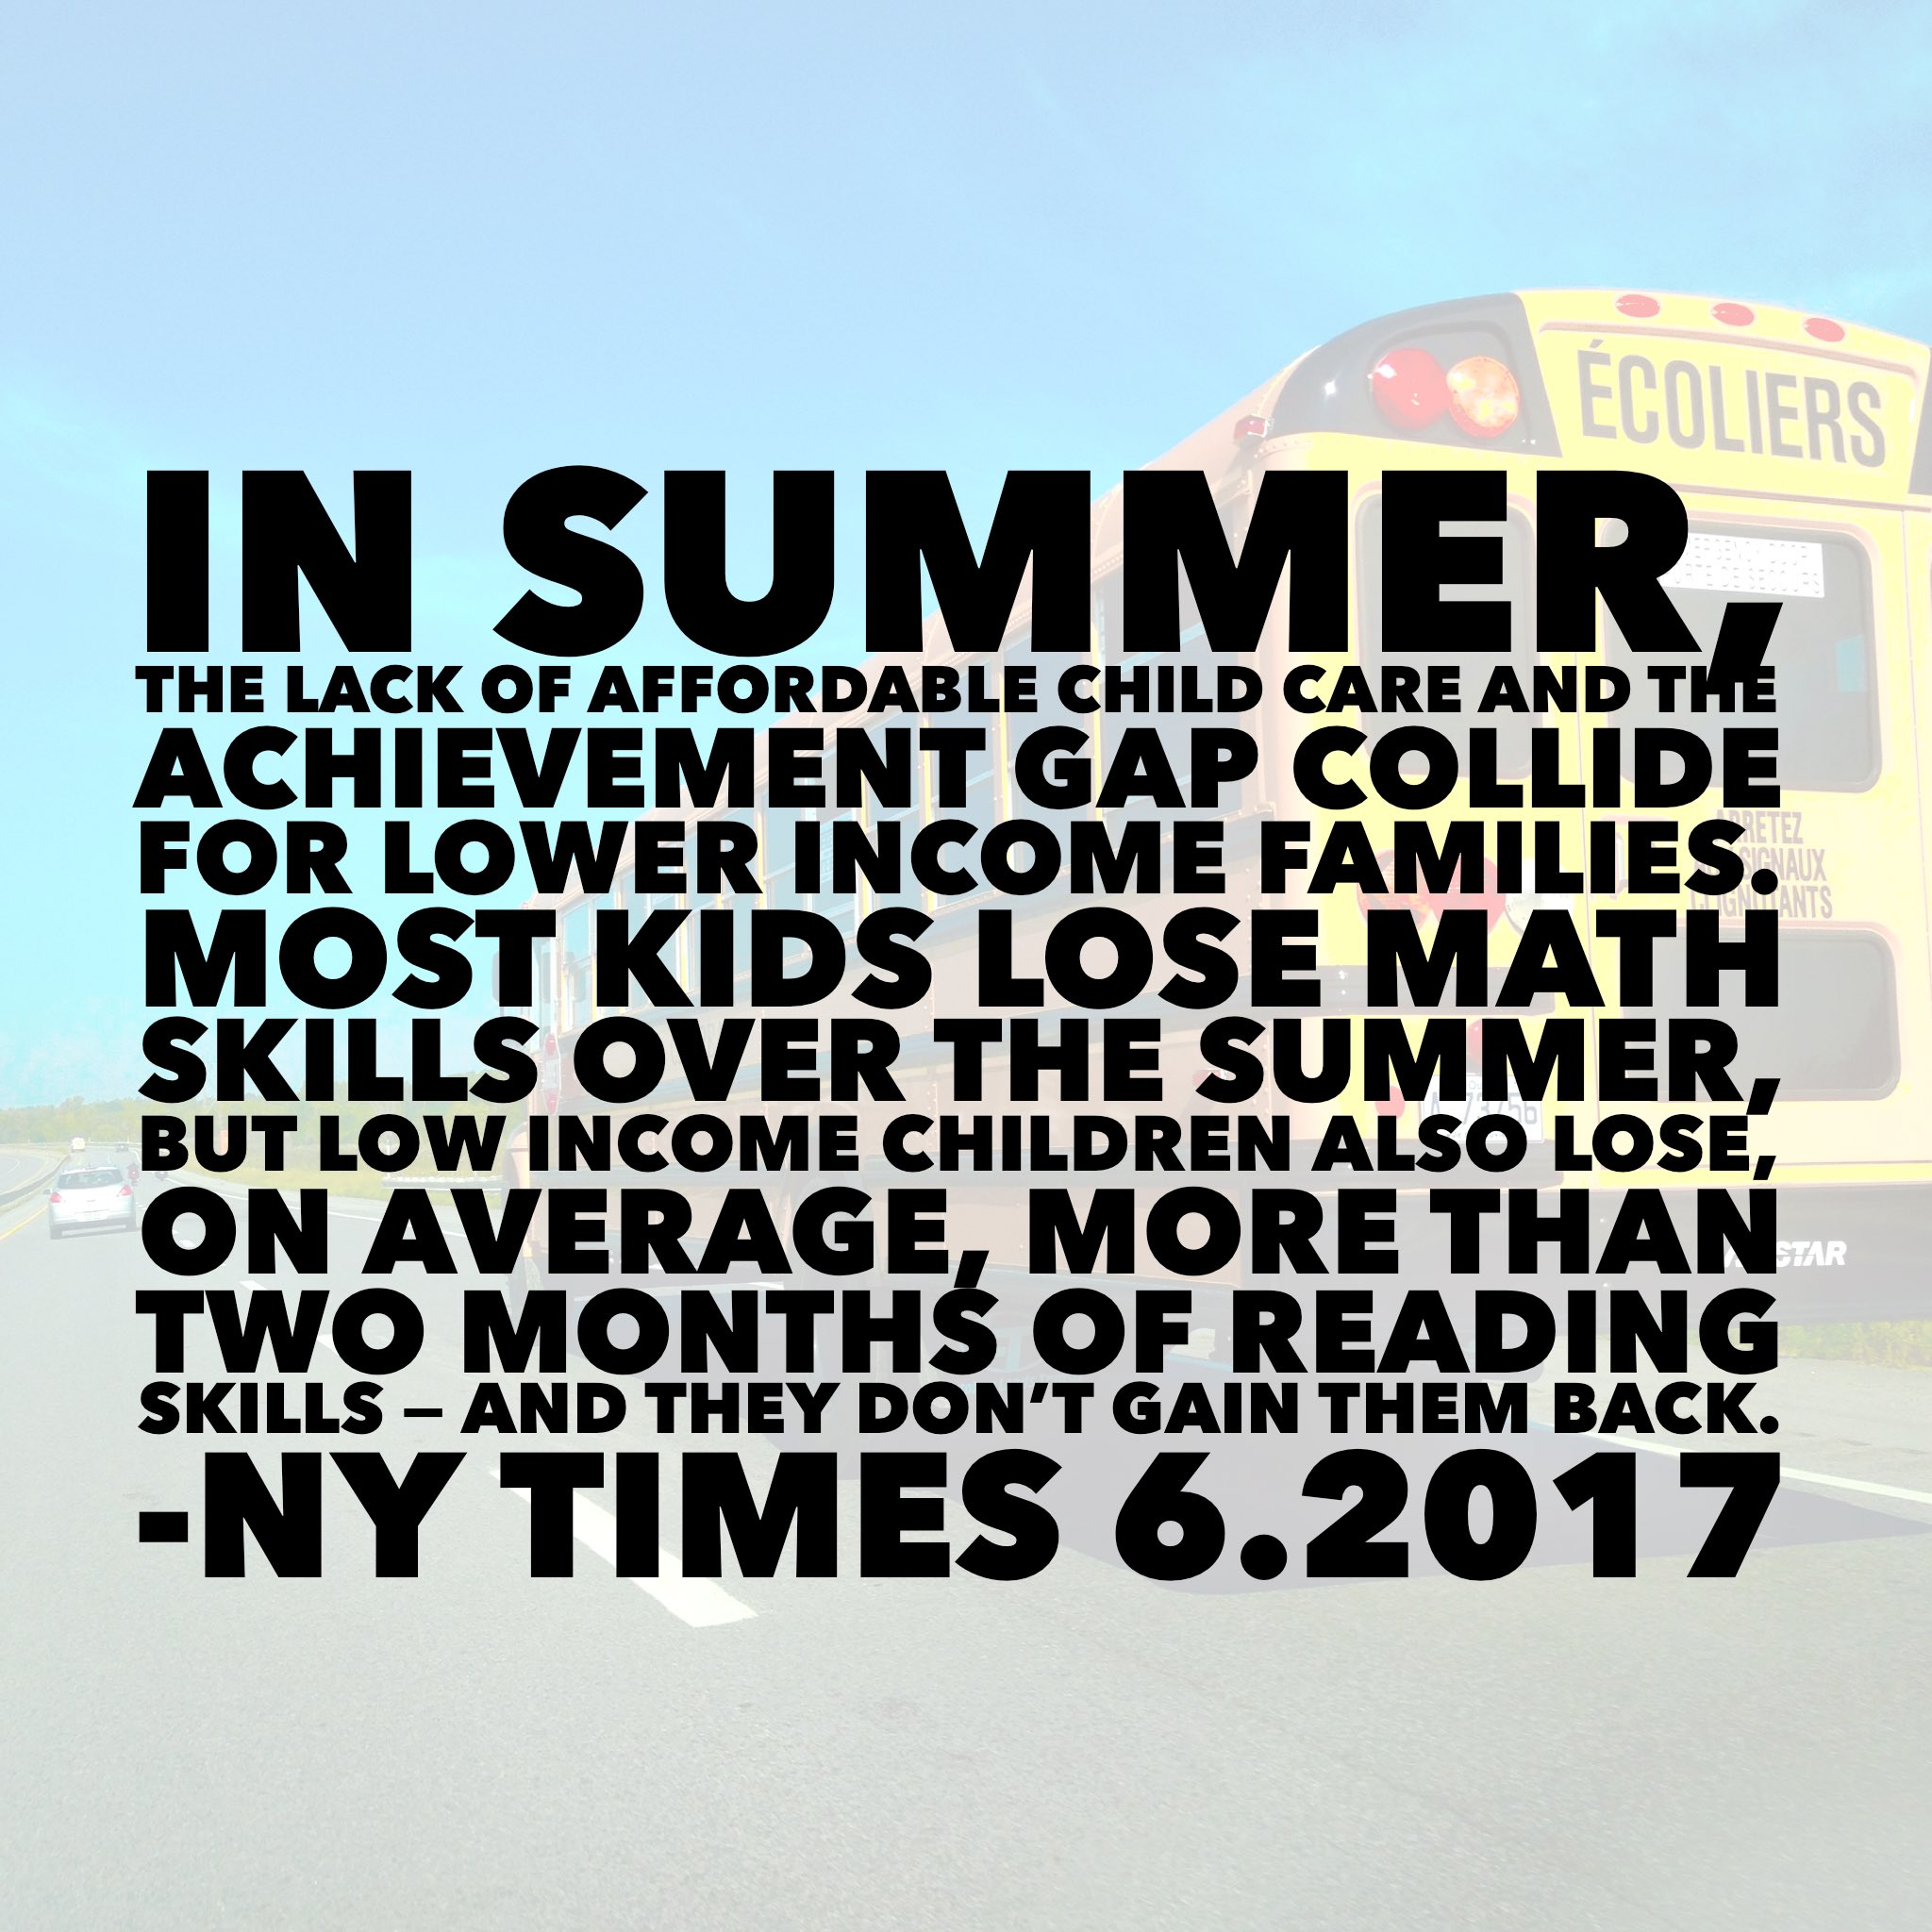 Opinion | The Families That Can't Afford Summer #WeLeadEd #suptchat #edchat #satchatwc #atplc #Educolor #NYedchat  https://t.co/HCvan4G8F4 https://t.co/IAEtkCv8mu